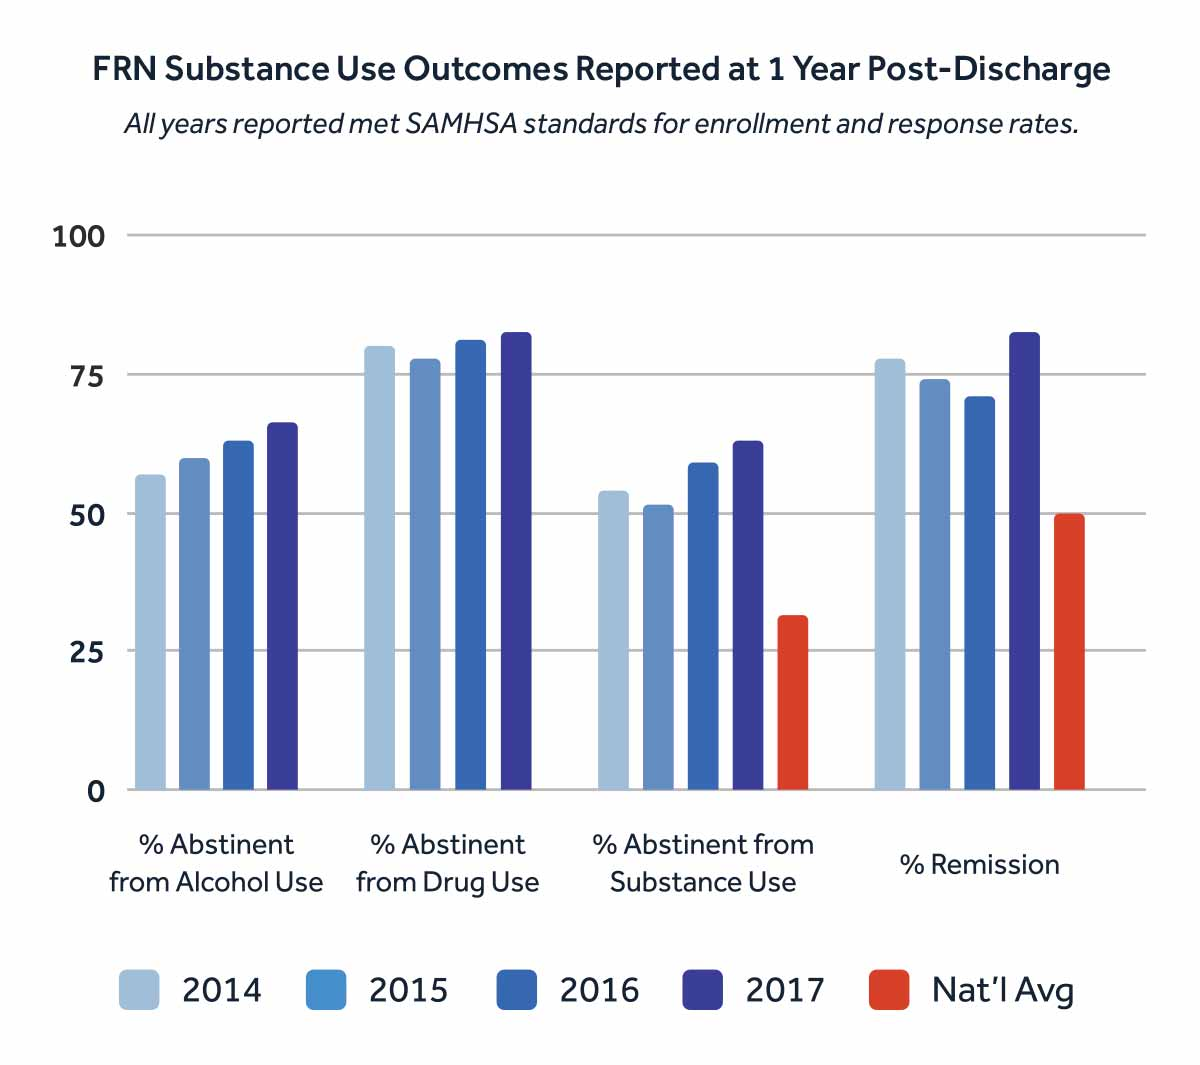 FRN Substance Use Outcomes Reported at 1 Year Post-Discharge